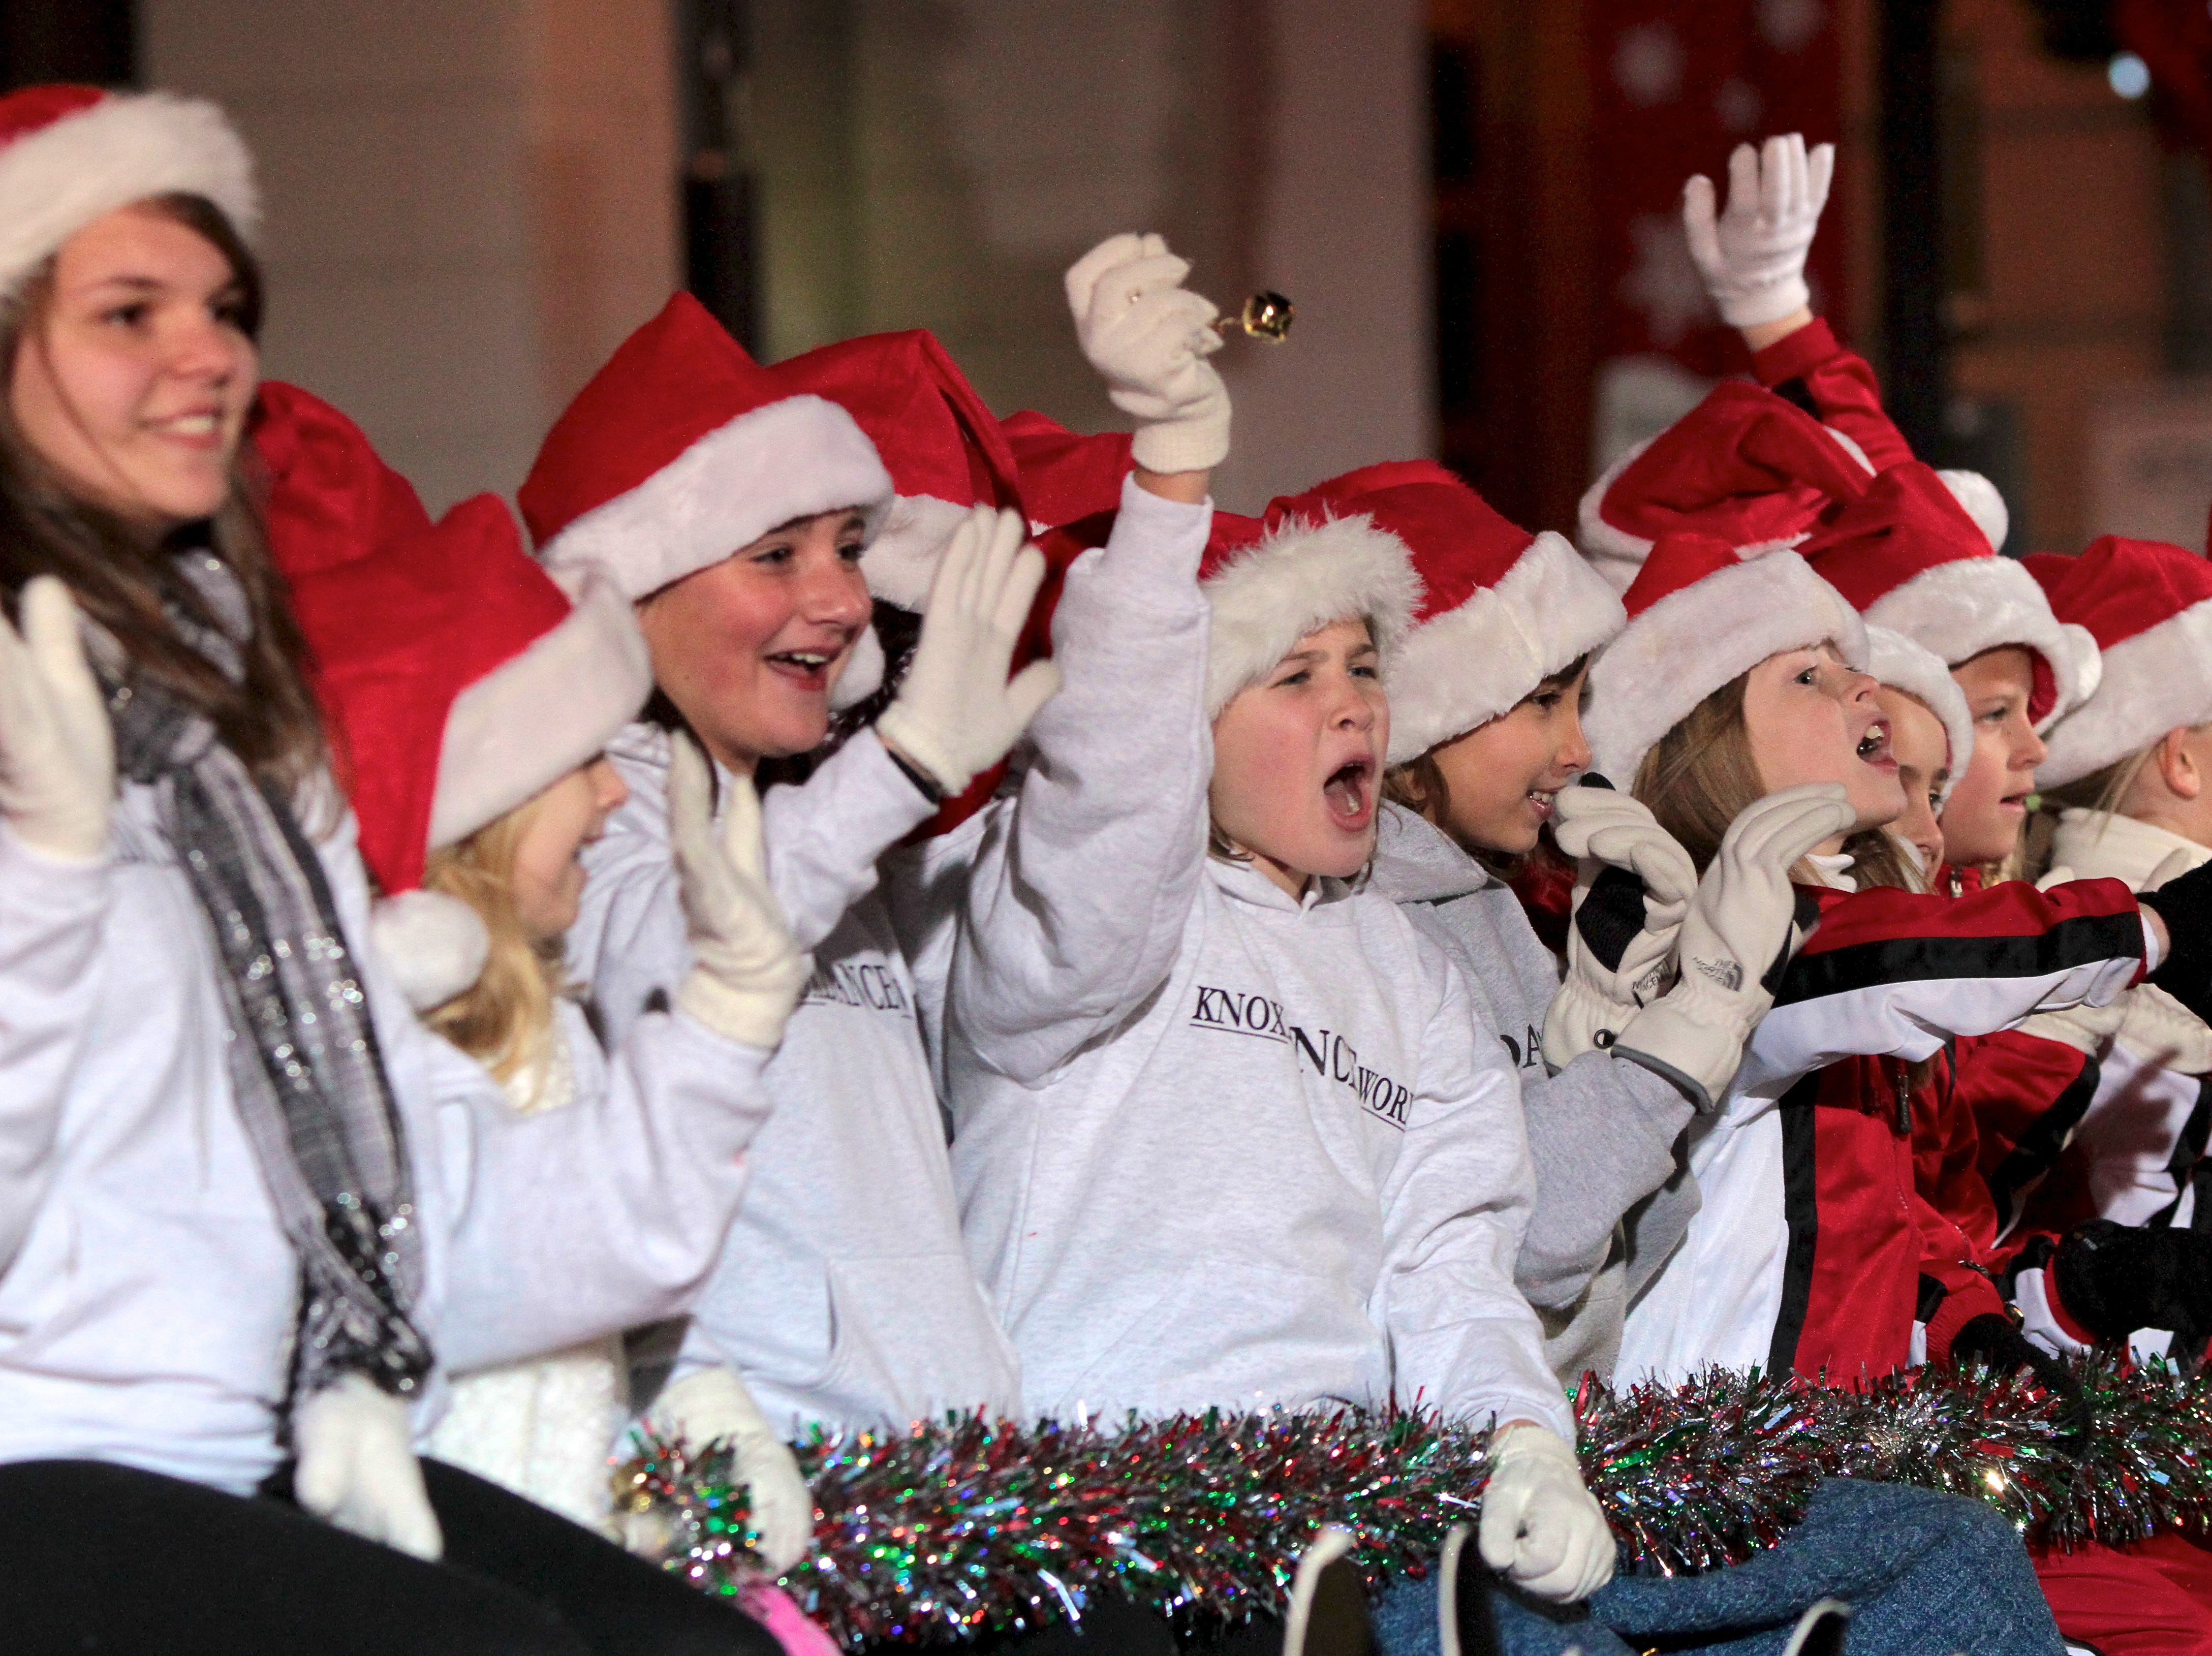 Kids on the Knox Dance Worx float wave during the annual Knoxville Christmas Parade on Friday, December 3, 2010.